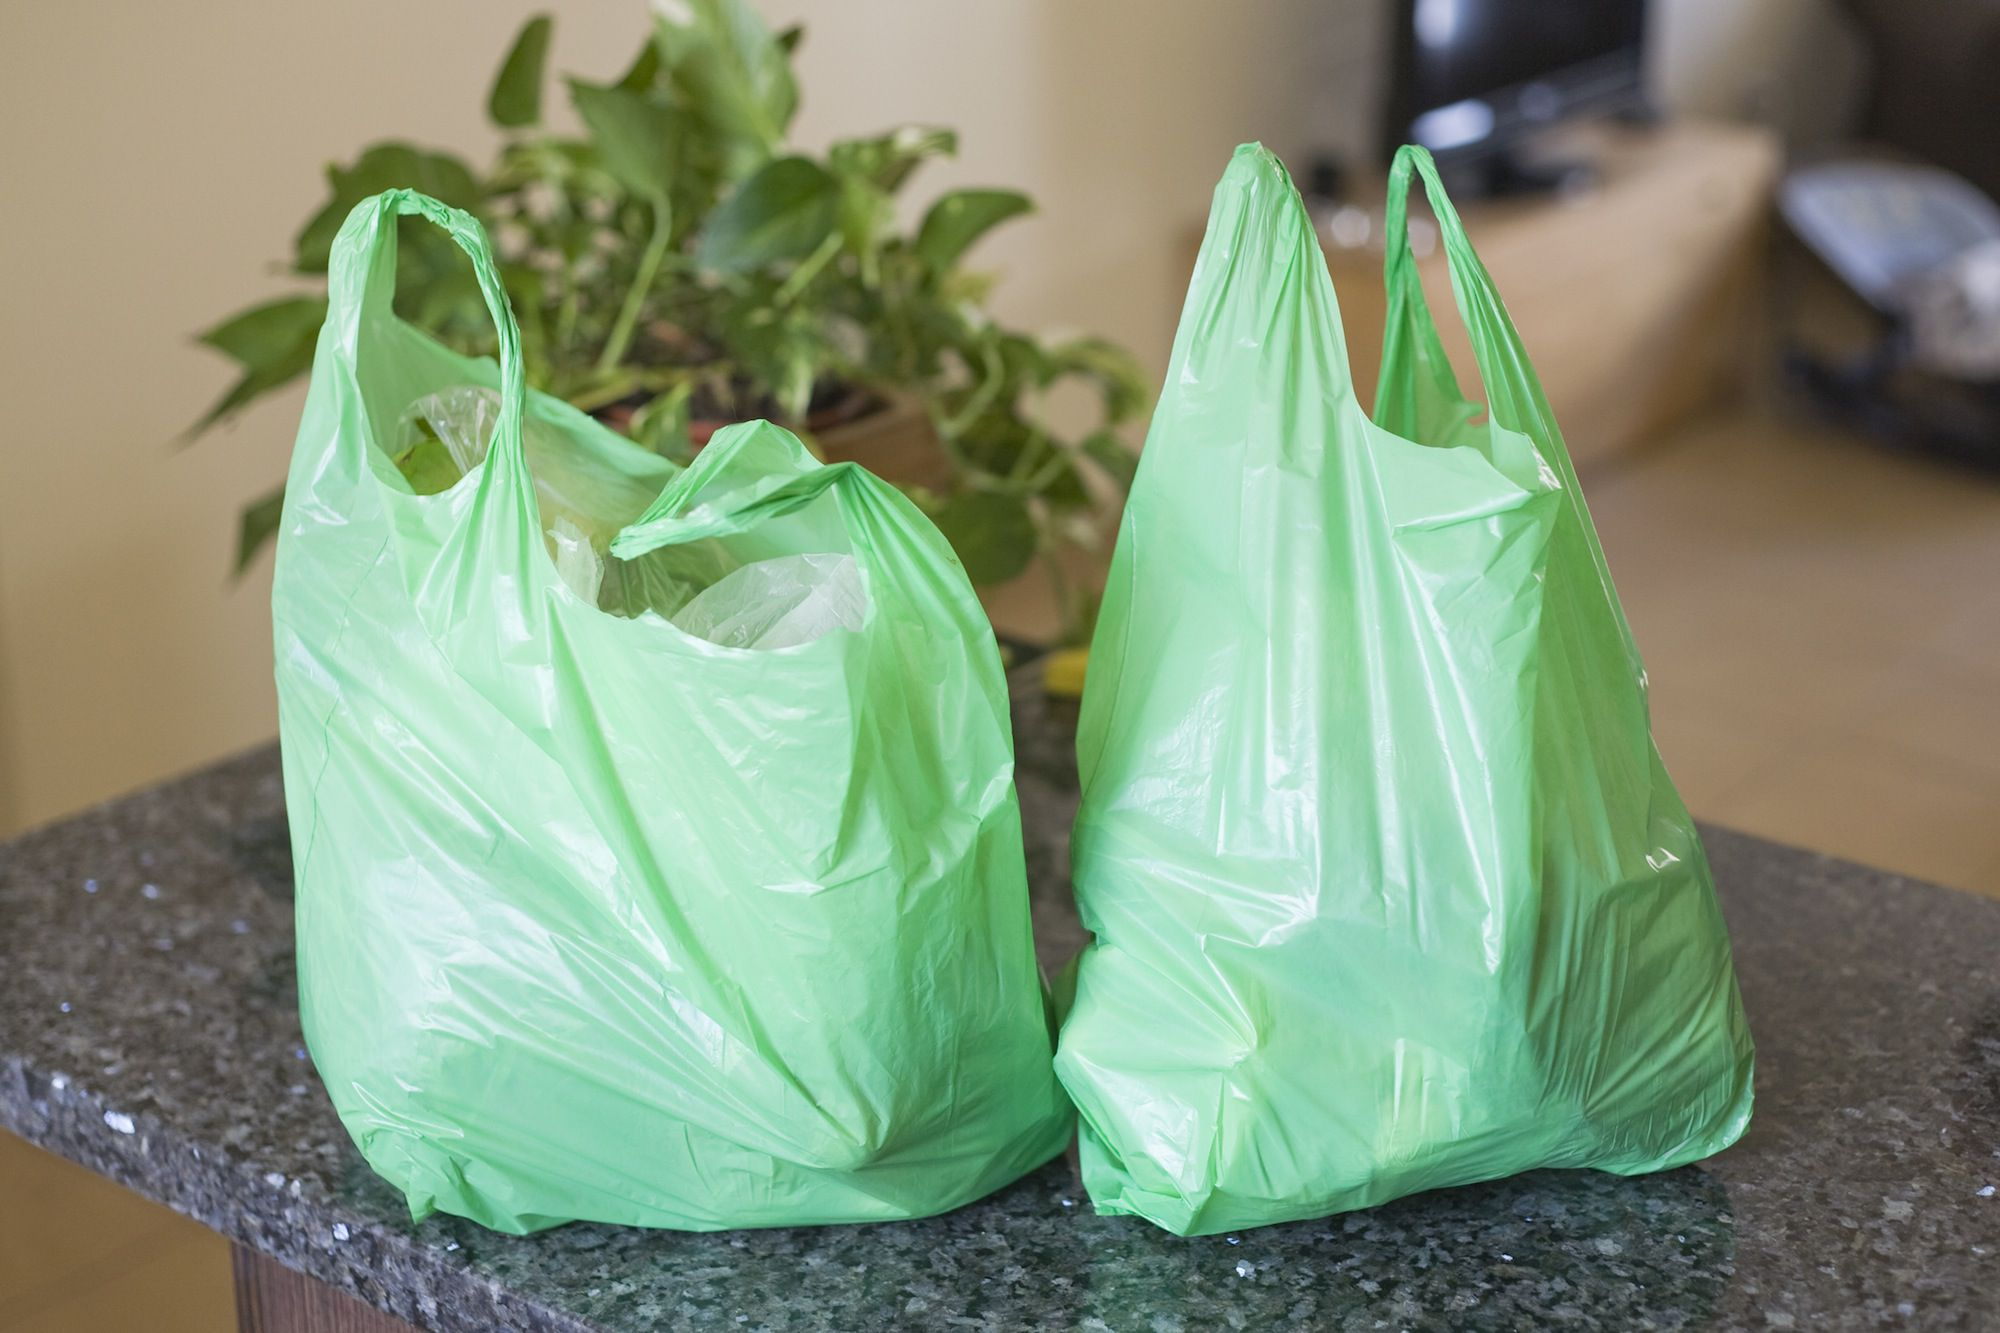 The Plastic Bag Controversy After A Quarter Century